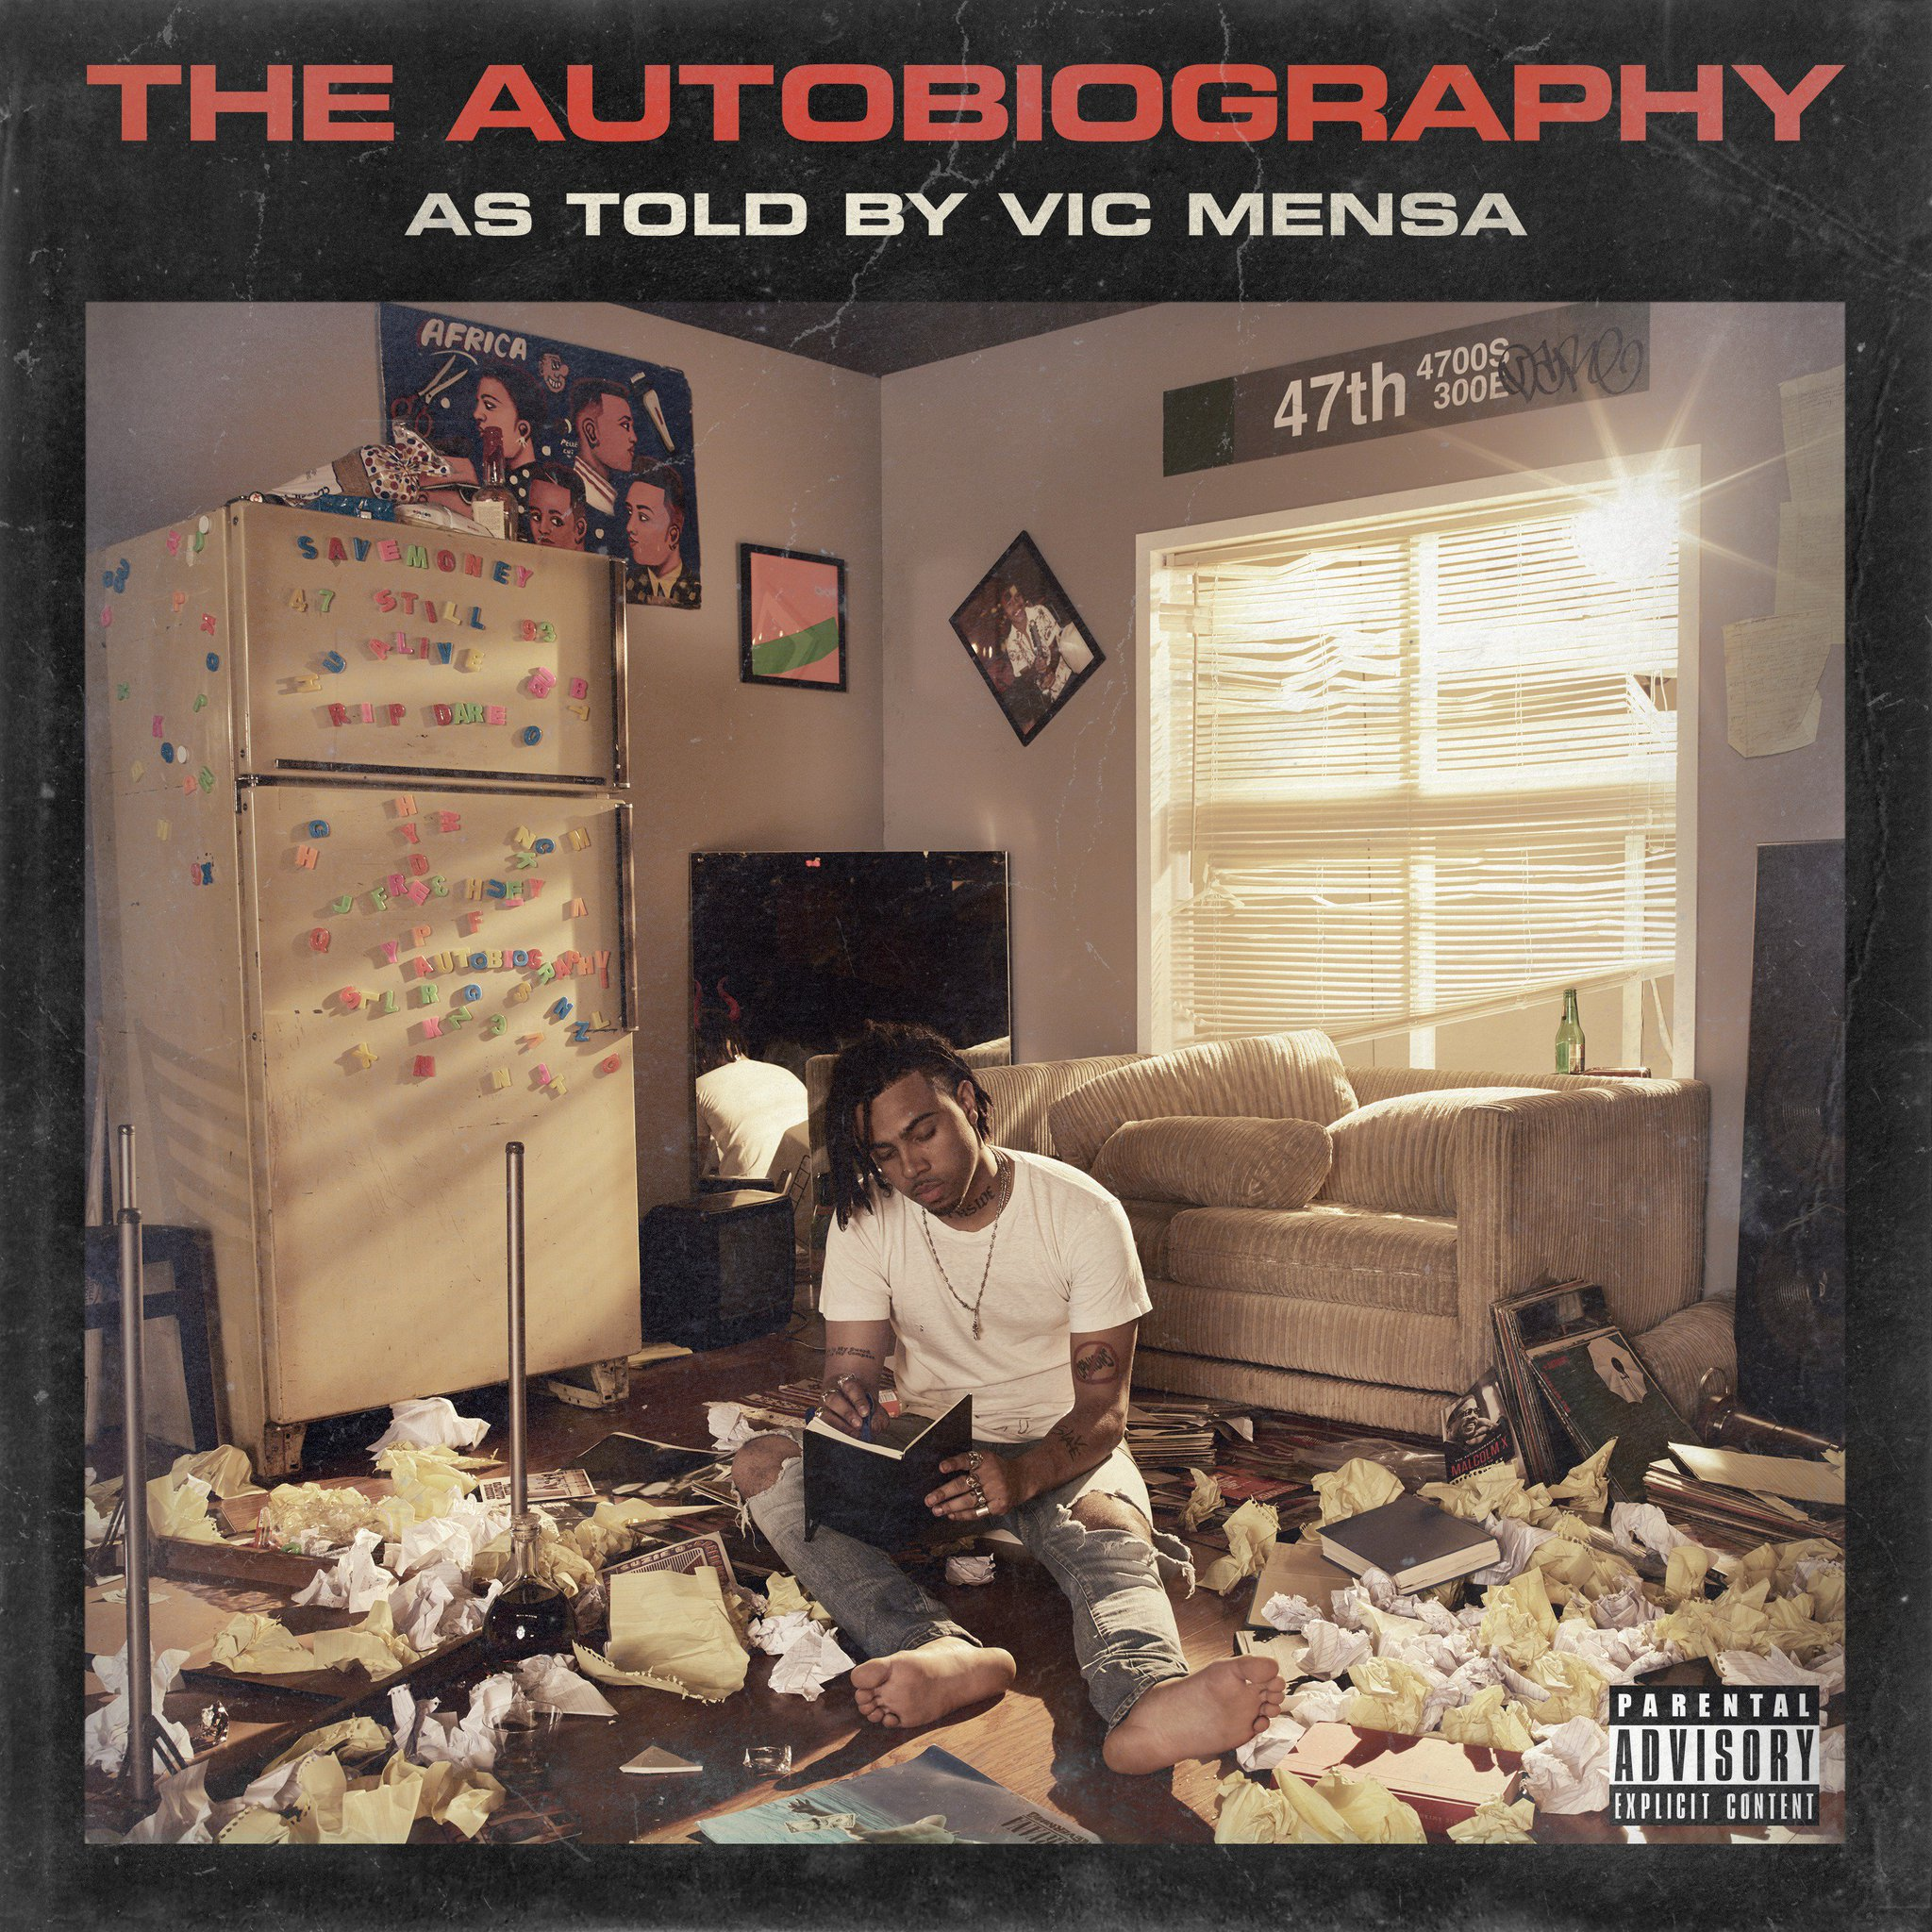 Pre-order @VicMensa's #TheAutobiography & get Wings �� https://t.co/JUTht3lTF7 https://t.co/XjHAPFvLmu